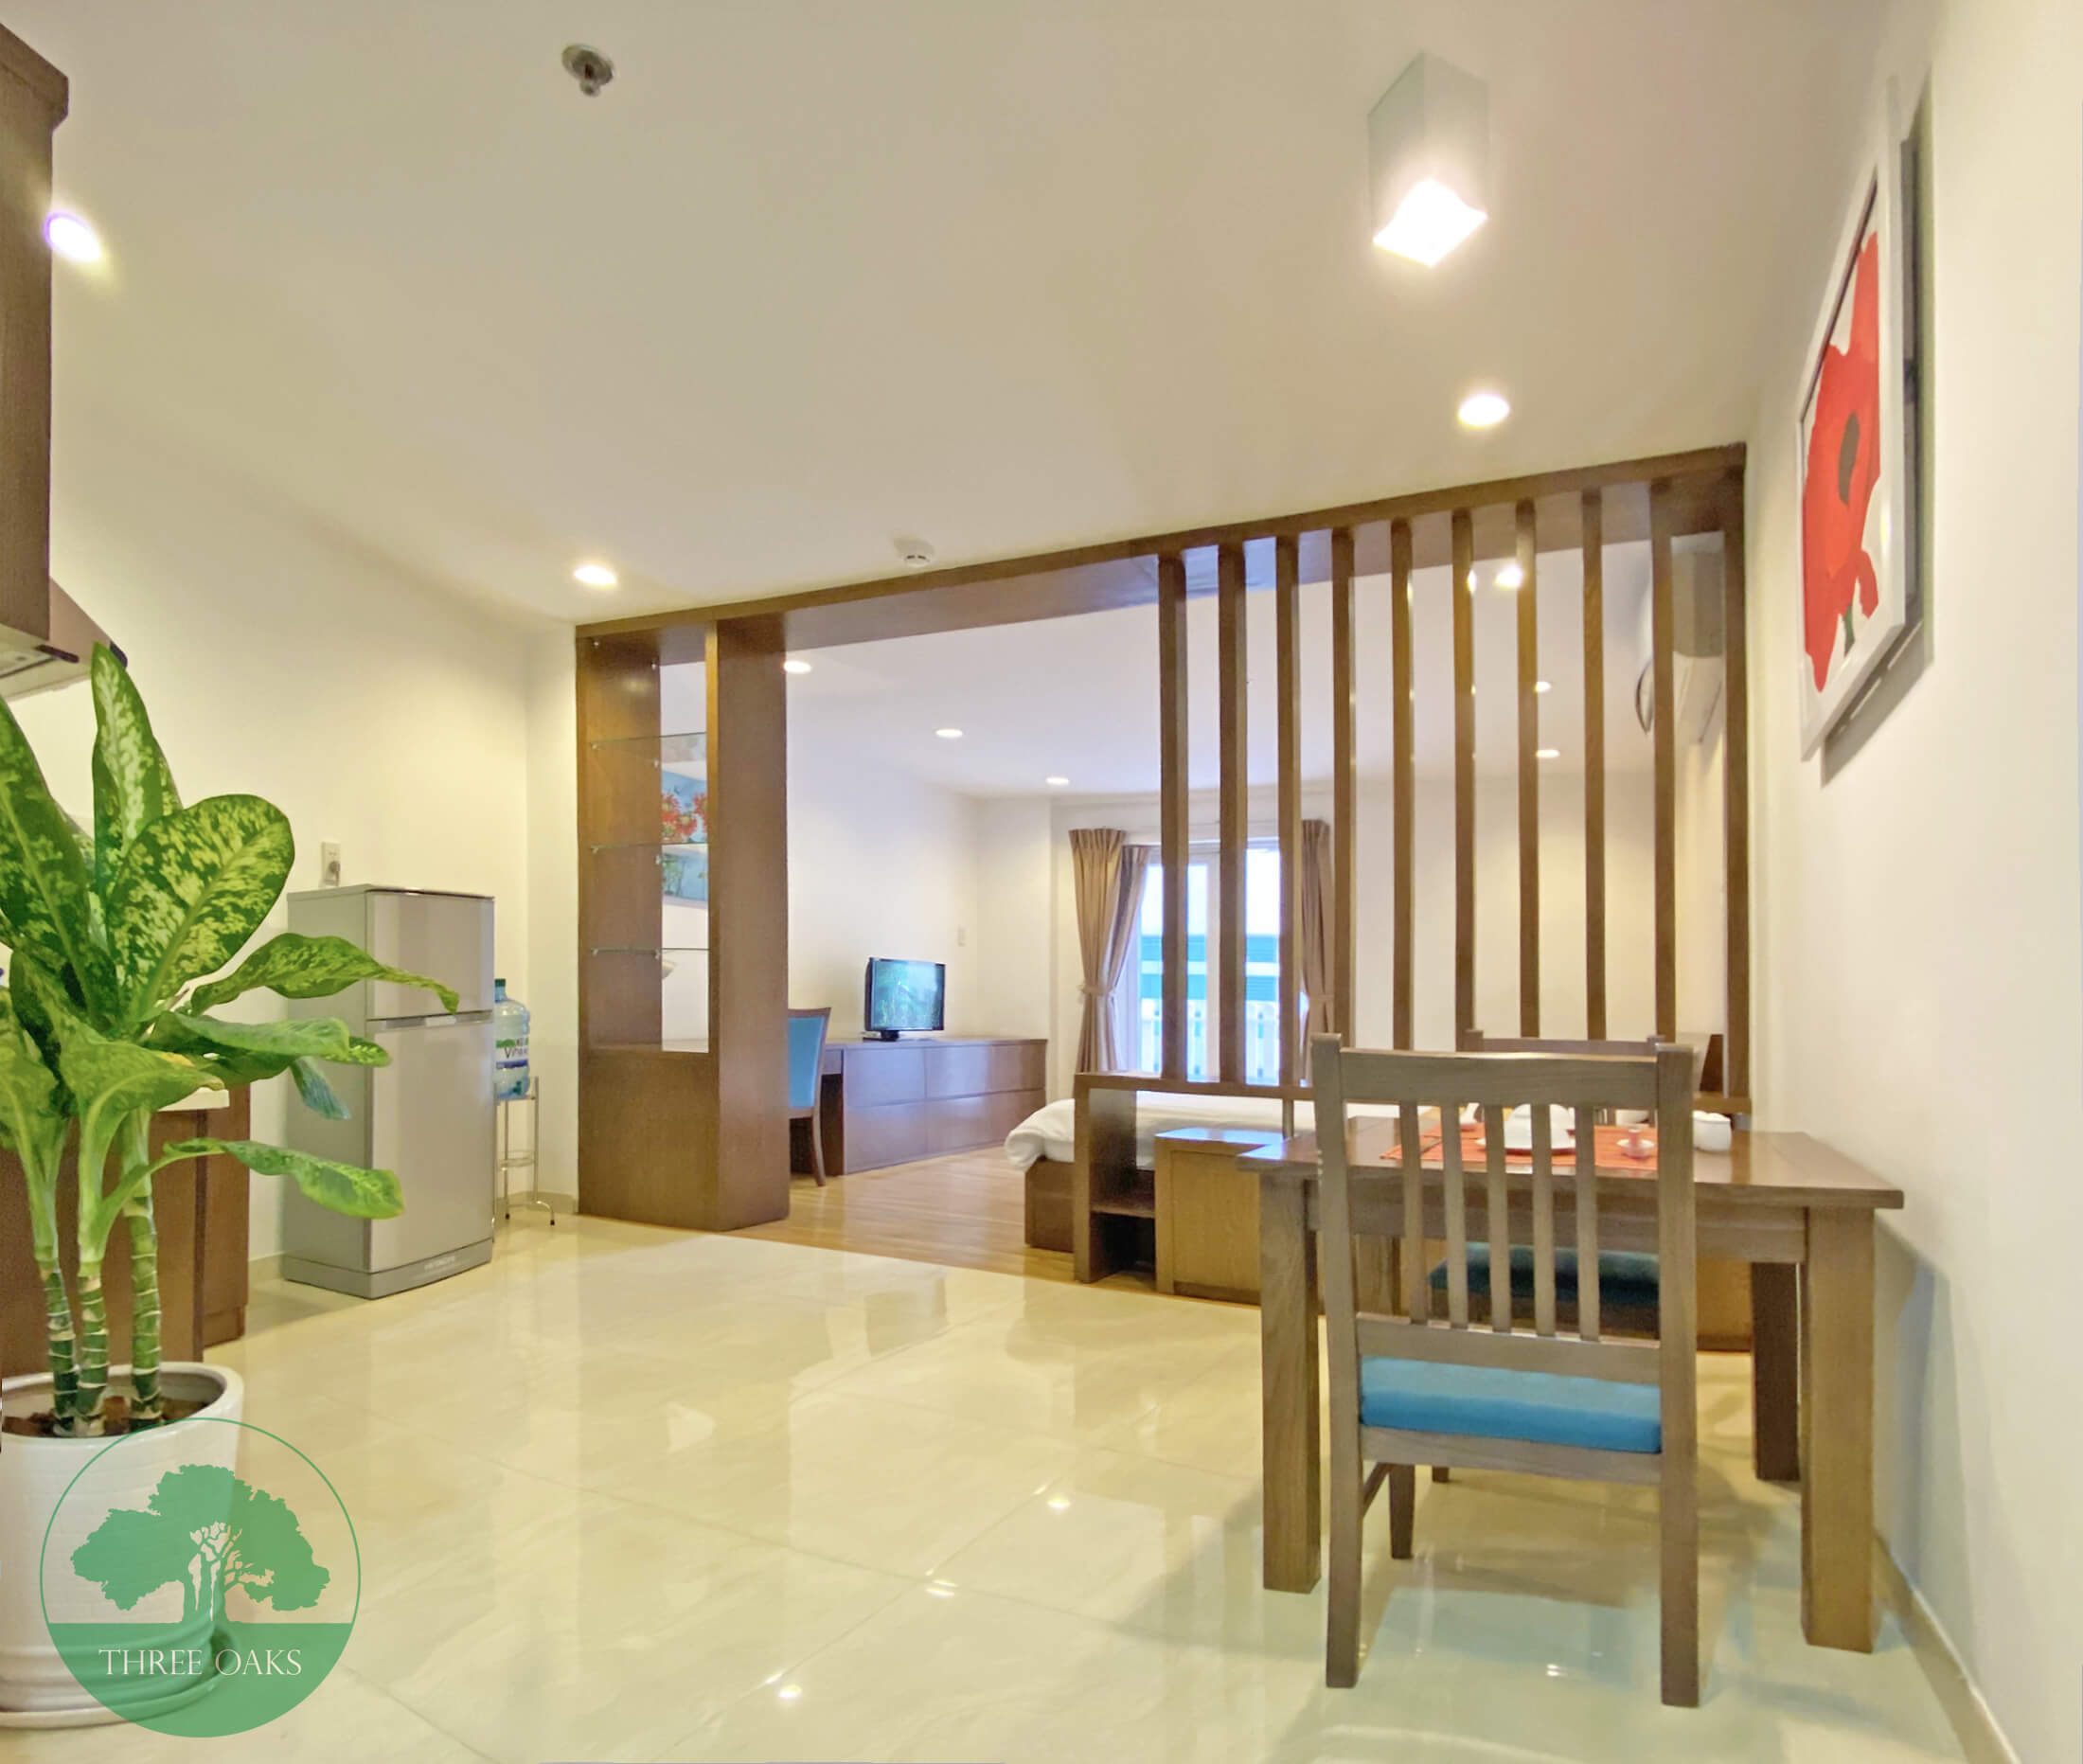 three-oaks-1-serviced-apartments-in-ho-chi-minh-city-in vietnam-2